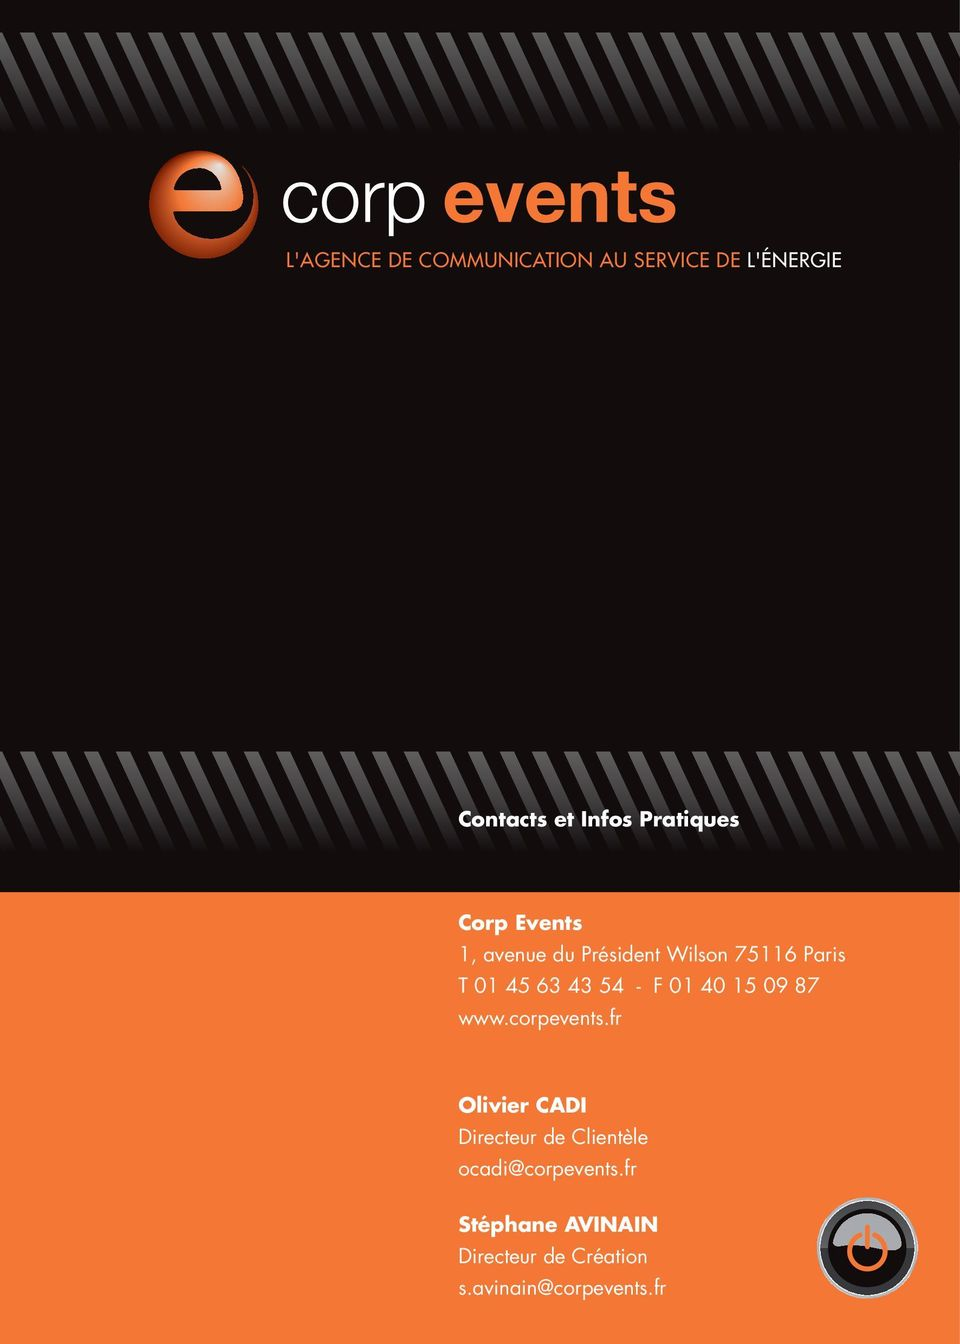 43 54 - F 01 40 15 09 87 www.corpevents.